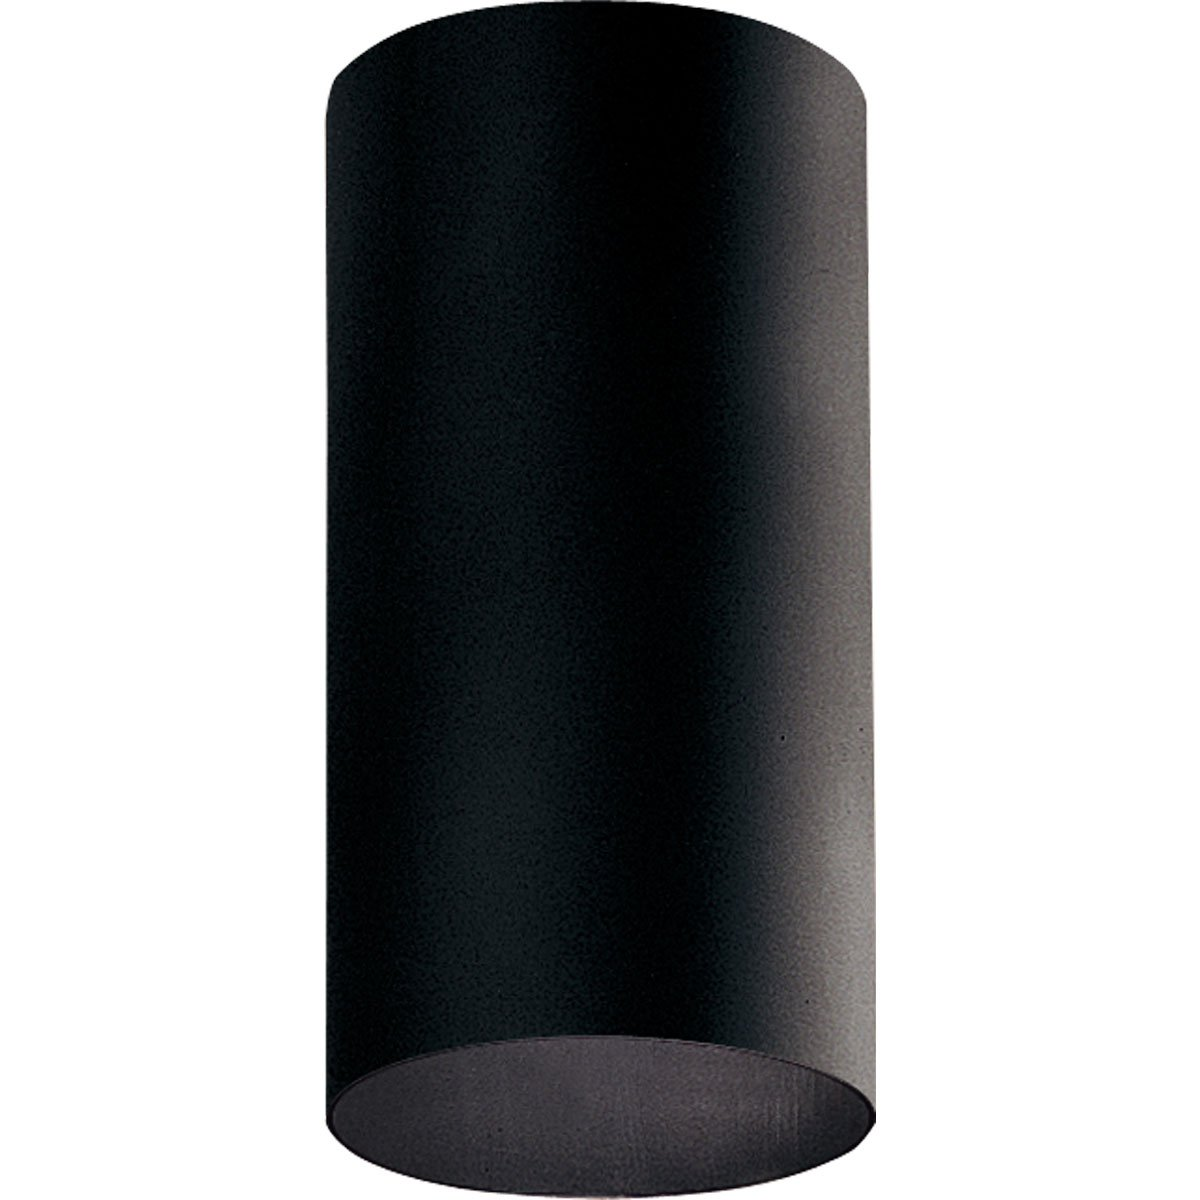 Progress Lighting P5741-31 6-Inch Flush Mount Cylinder with Heavy Duty Aluminum Construction Powder Coated Finish and UL Listed For Wet Locations, Black